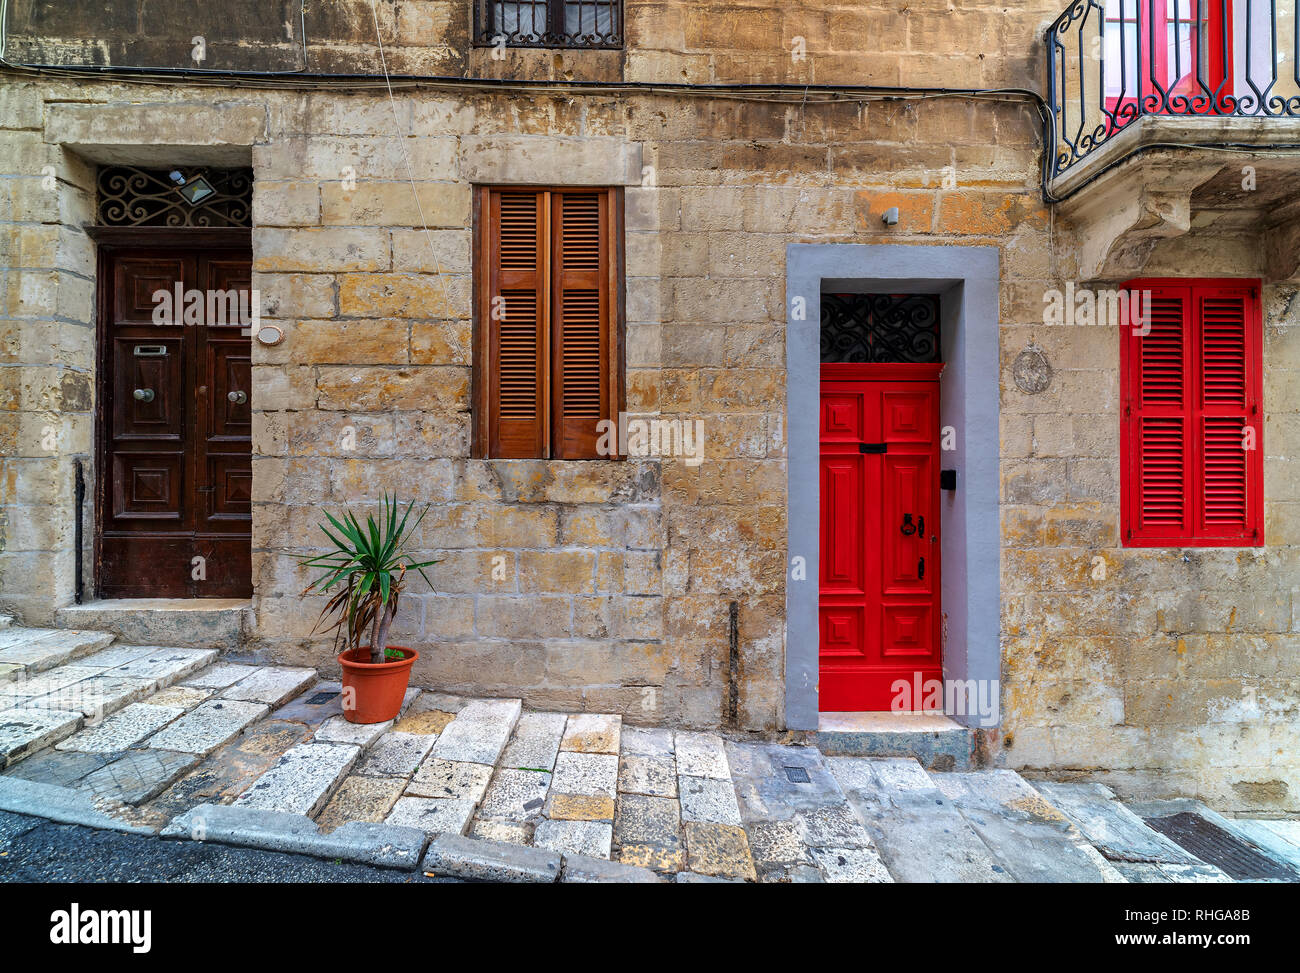 Front view of stone house with typical colorful wooden doors in Valletta, Malta. - Stock Image